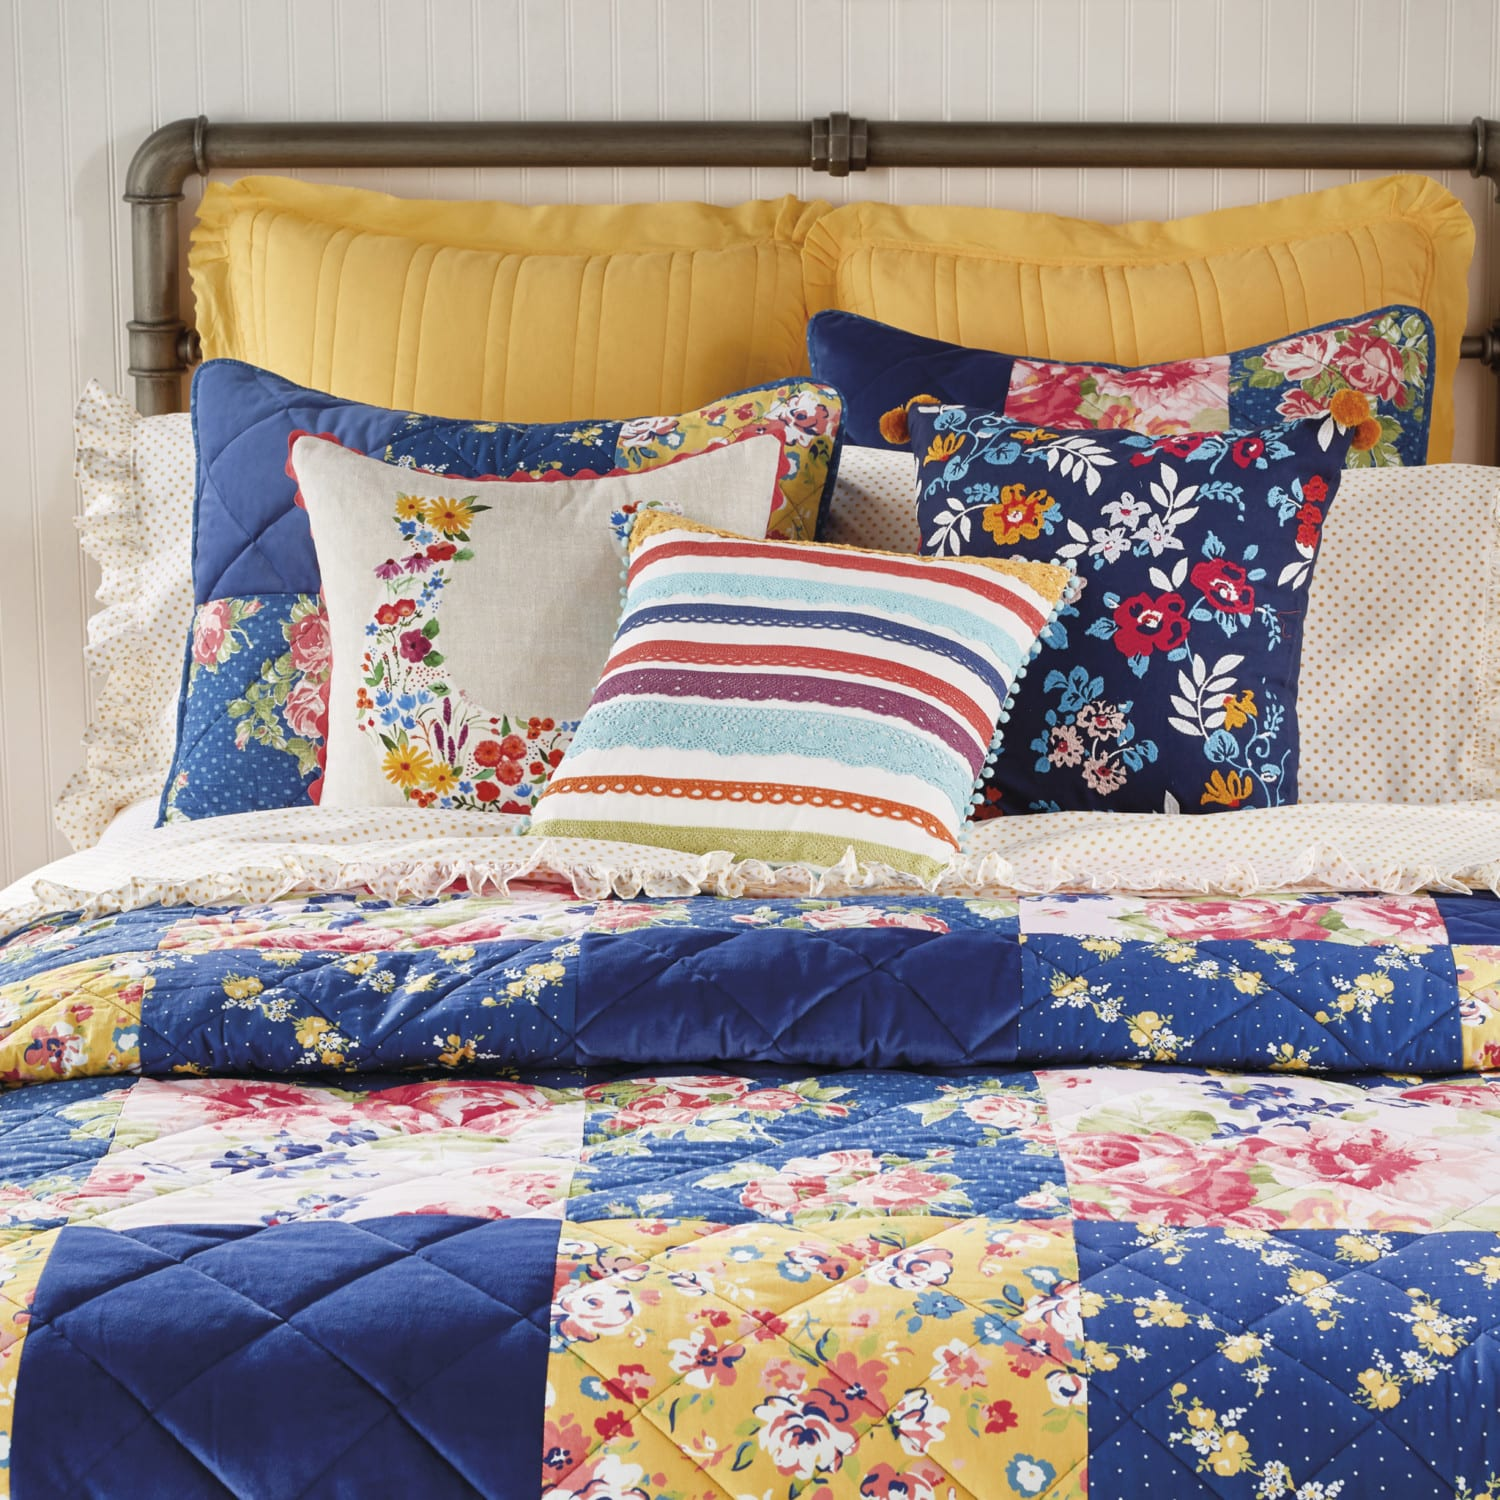 New Fall Bedding Collection From Pioneer Woman Simplemost